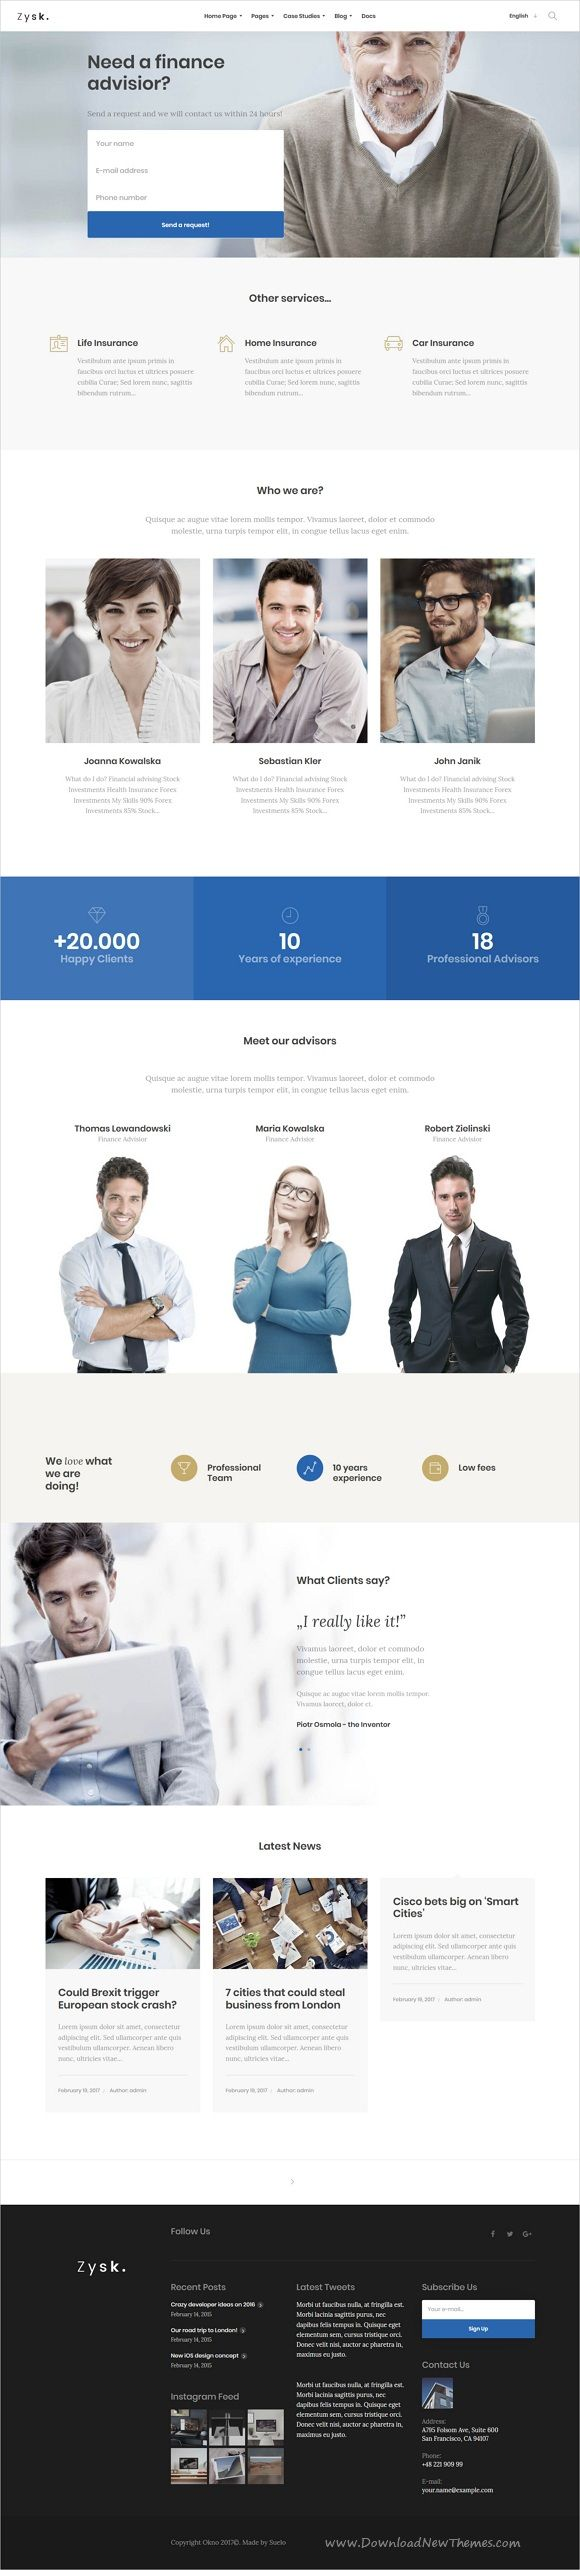 Zysk is smooth and stylish 7in1 responsive #WordPress theme for #insurance #advisor, business, finance and consulting services professional website download now..